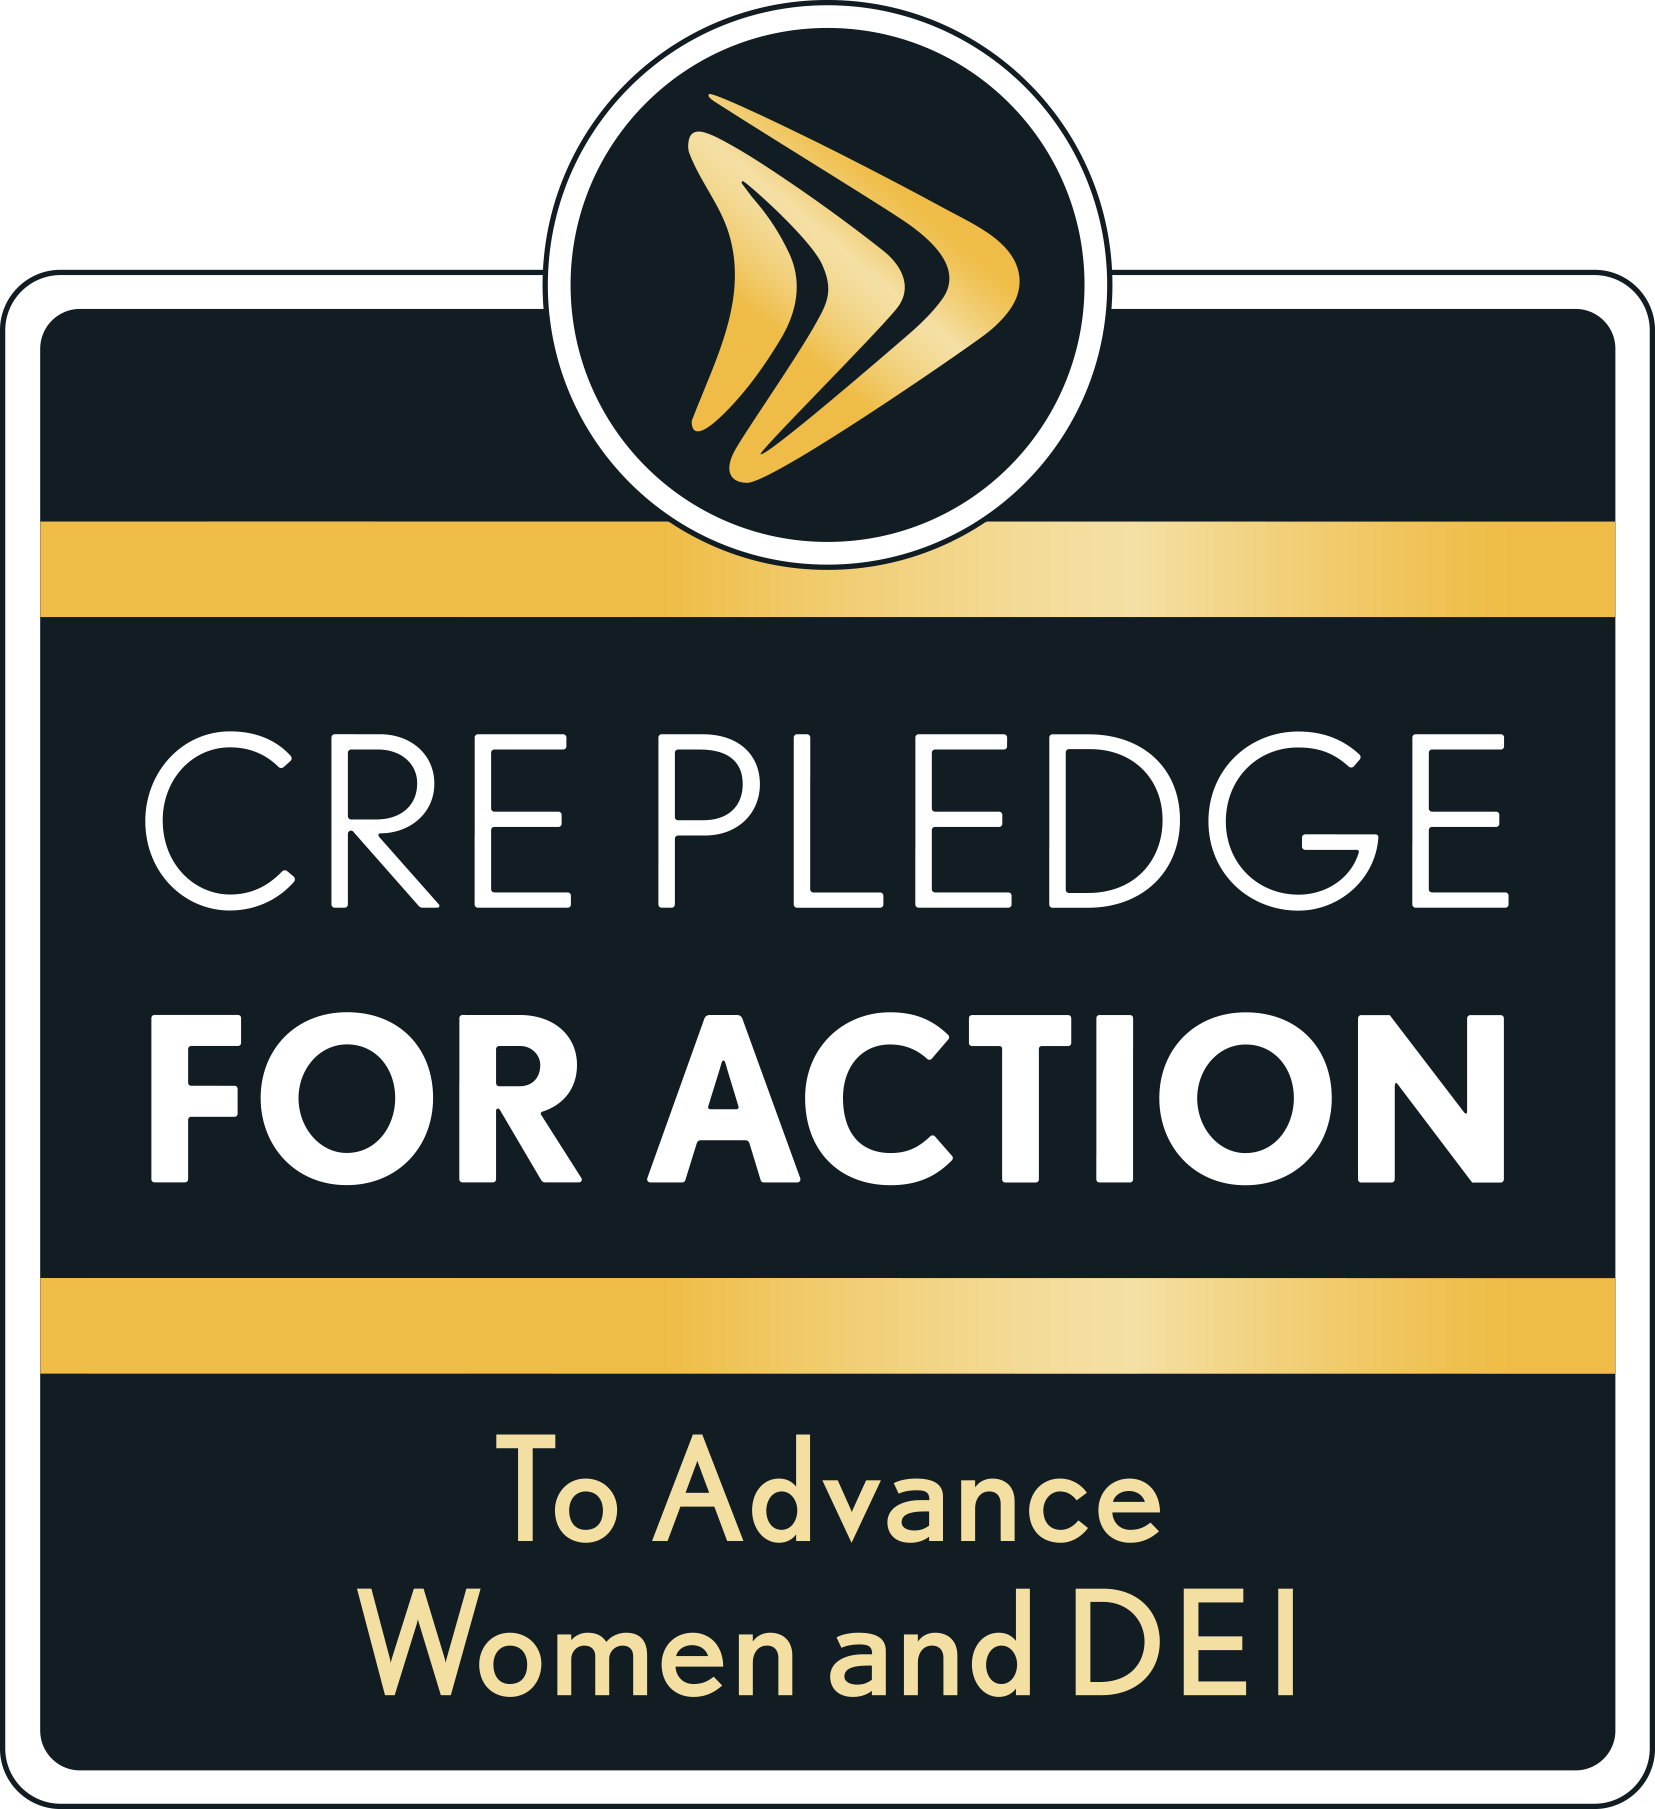 CRE Pledge for Action